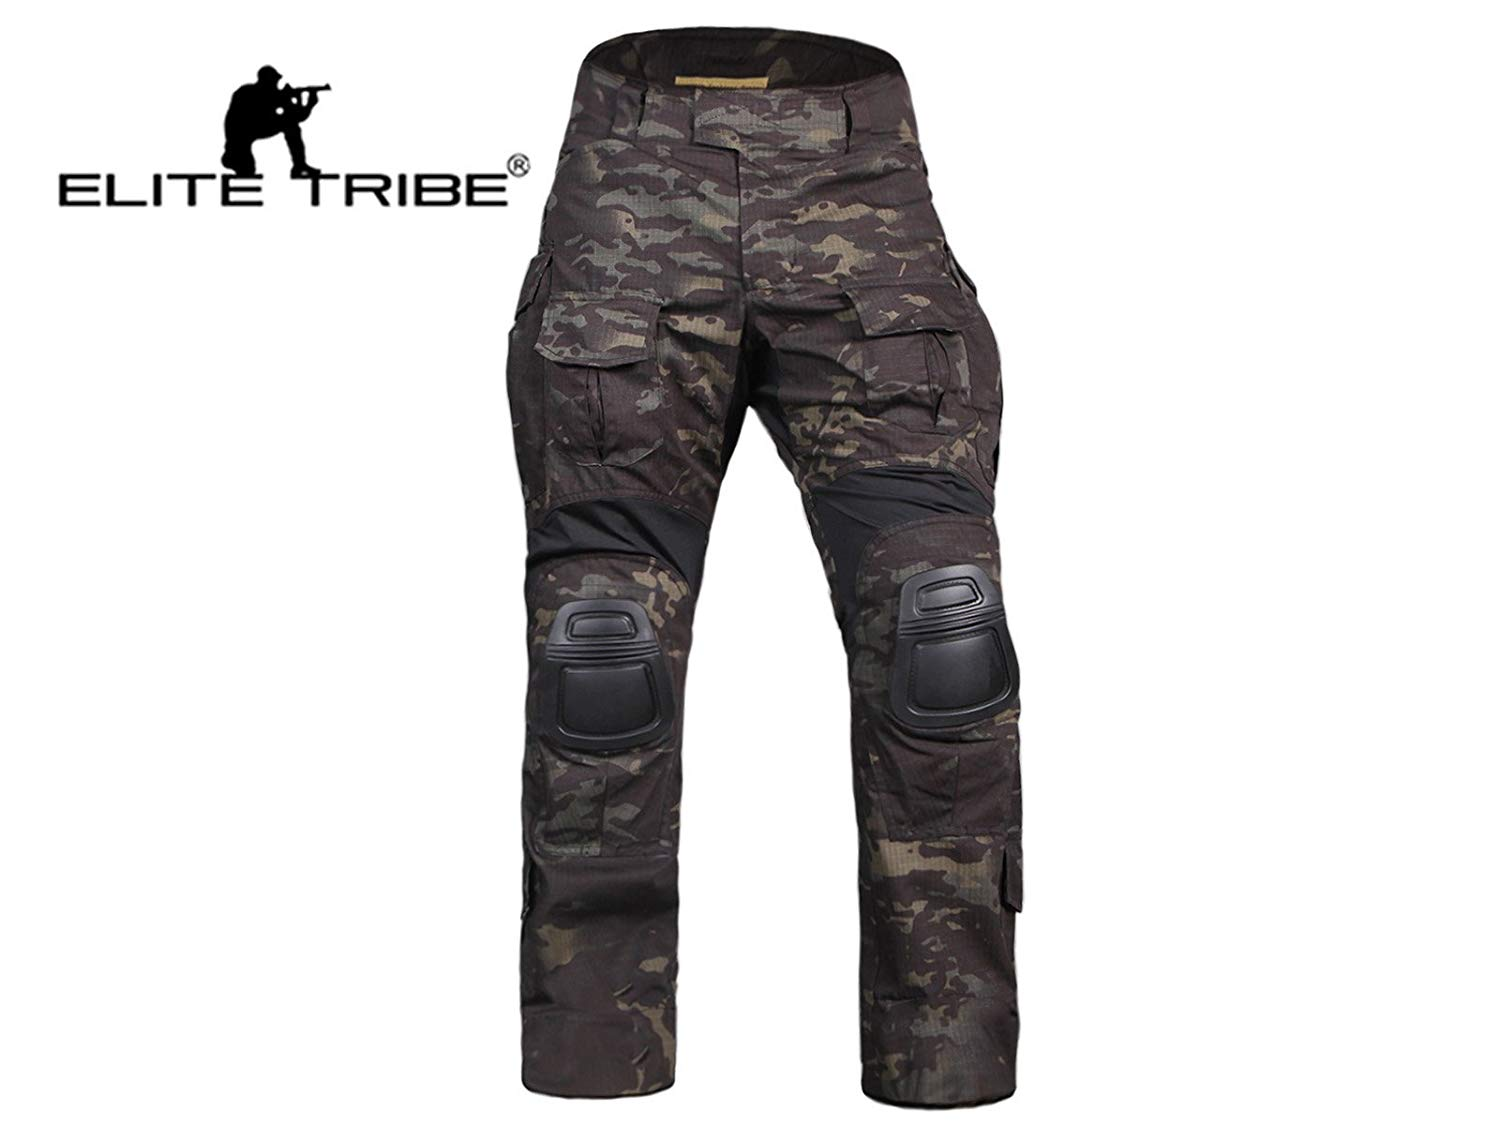 21690f39 Get Quotations · Elite Tribe Airsoft Hunting Tactical Pants Combat Gen3  Pants with Knee Pad Multicam Black